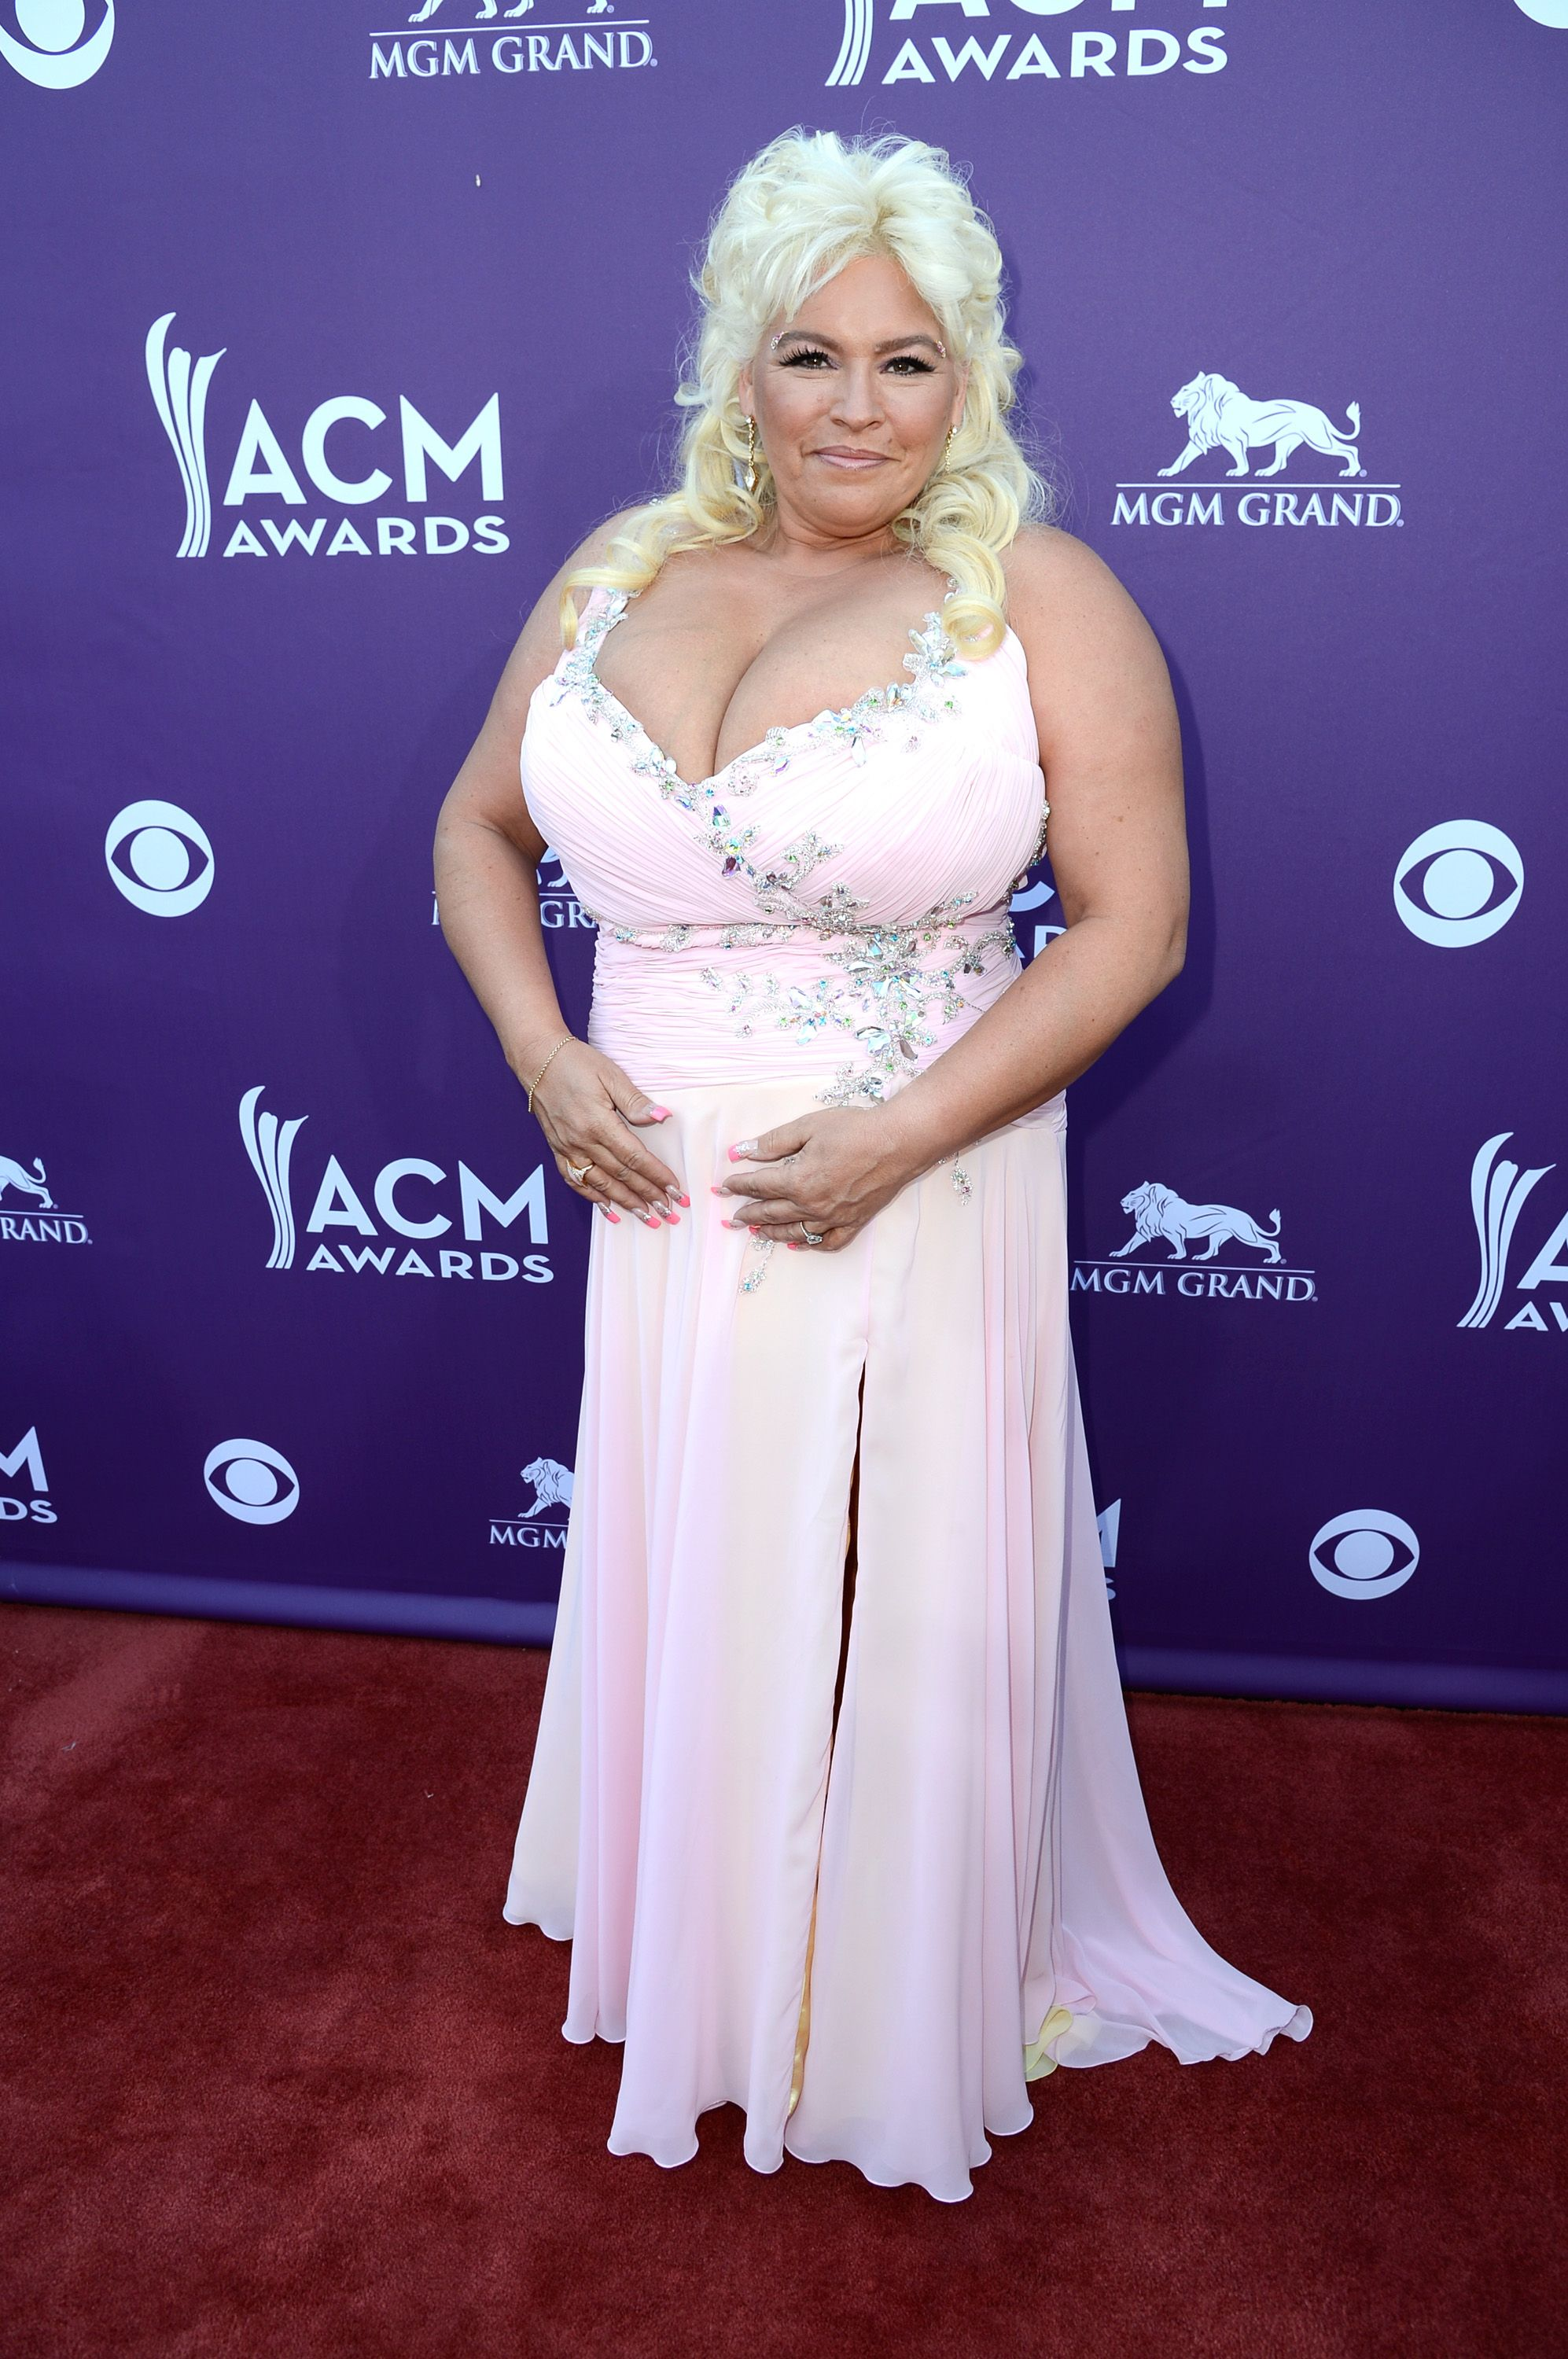 Beth Chapman at the 48th Annual Academy of Country Music Awards on April 7, 2013, in Las Vegas, Nevada | Photo: Frazer Harrison/ACMA2013/Getty Images